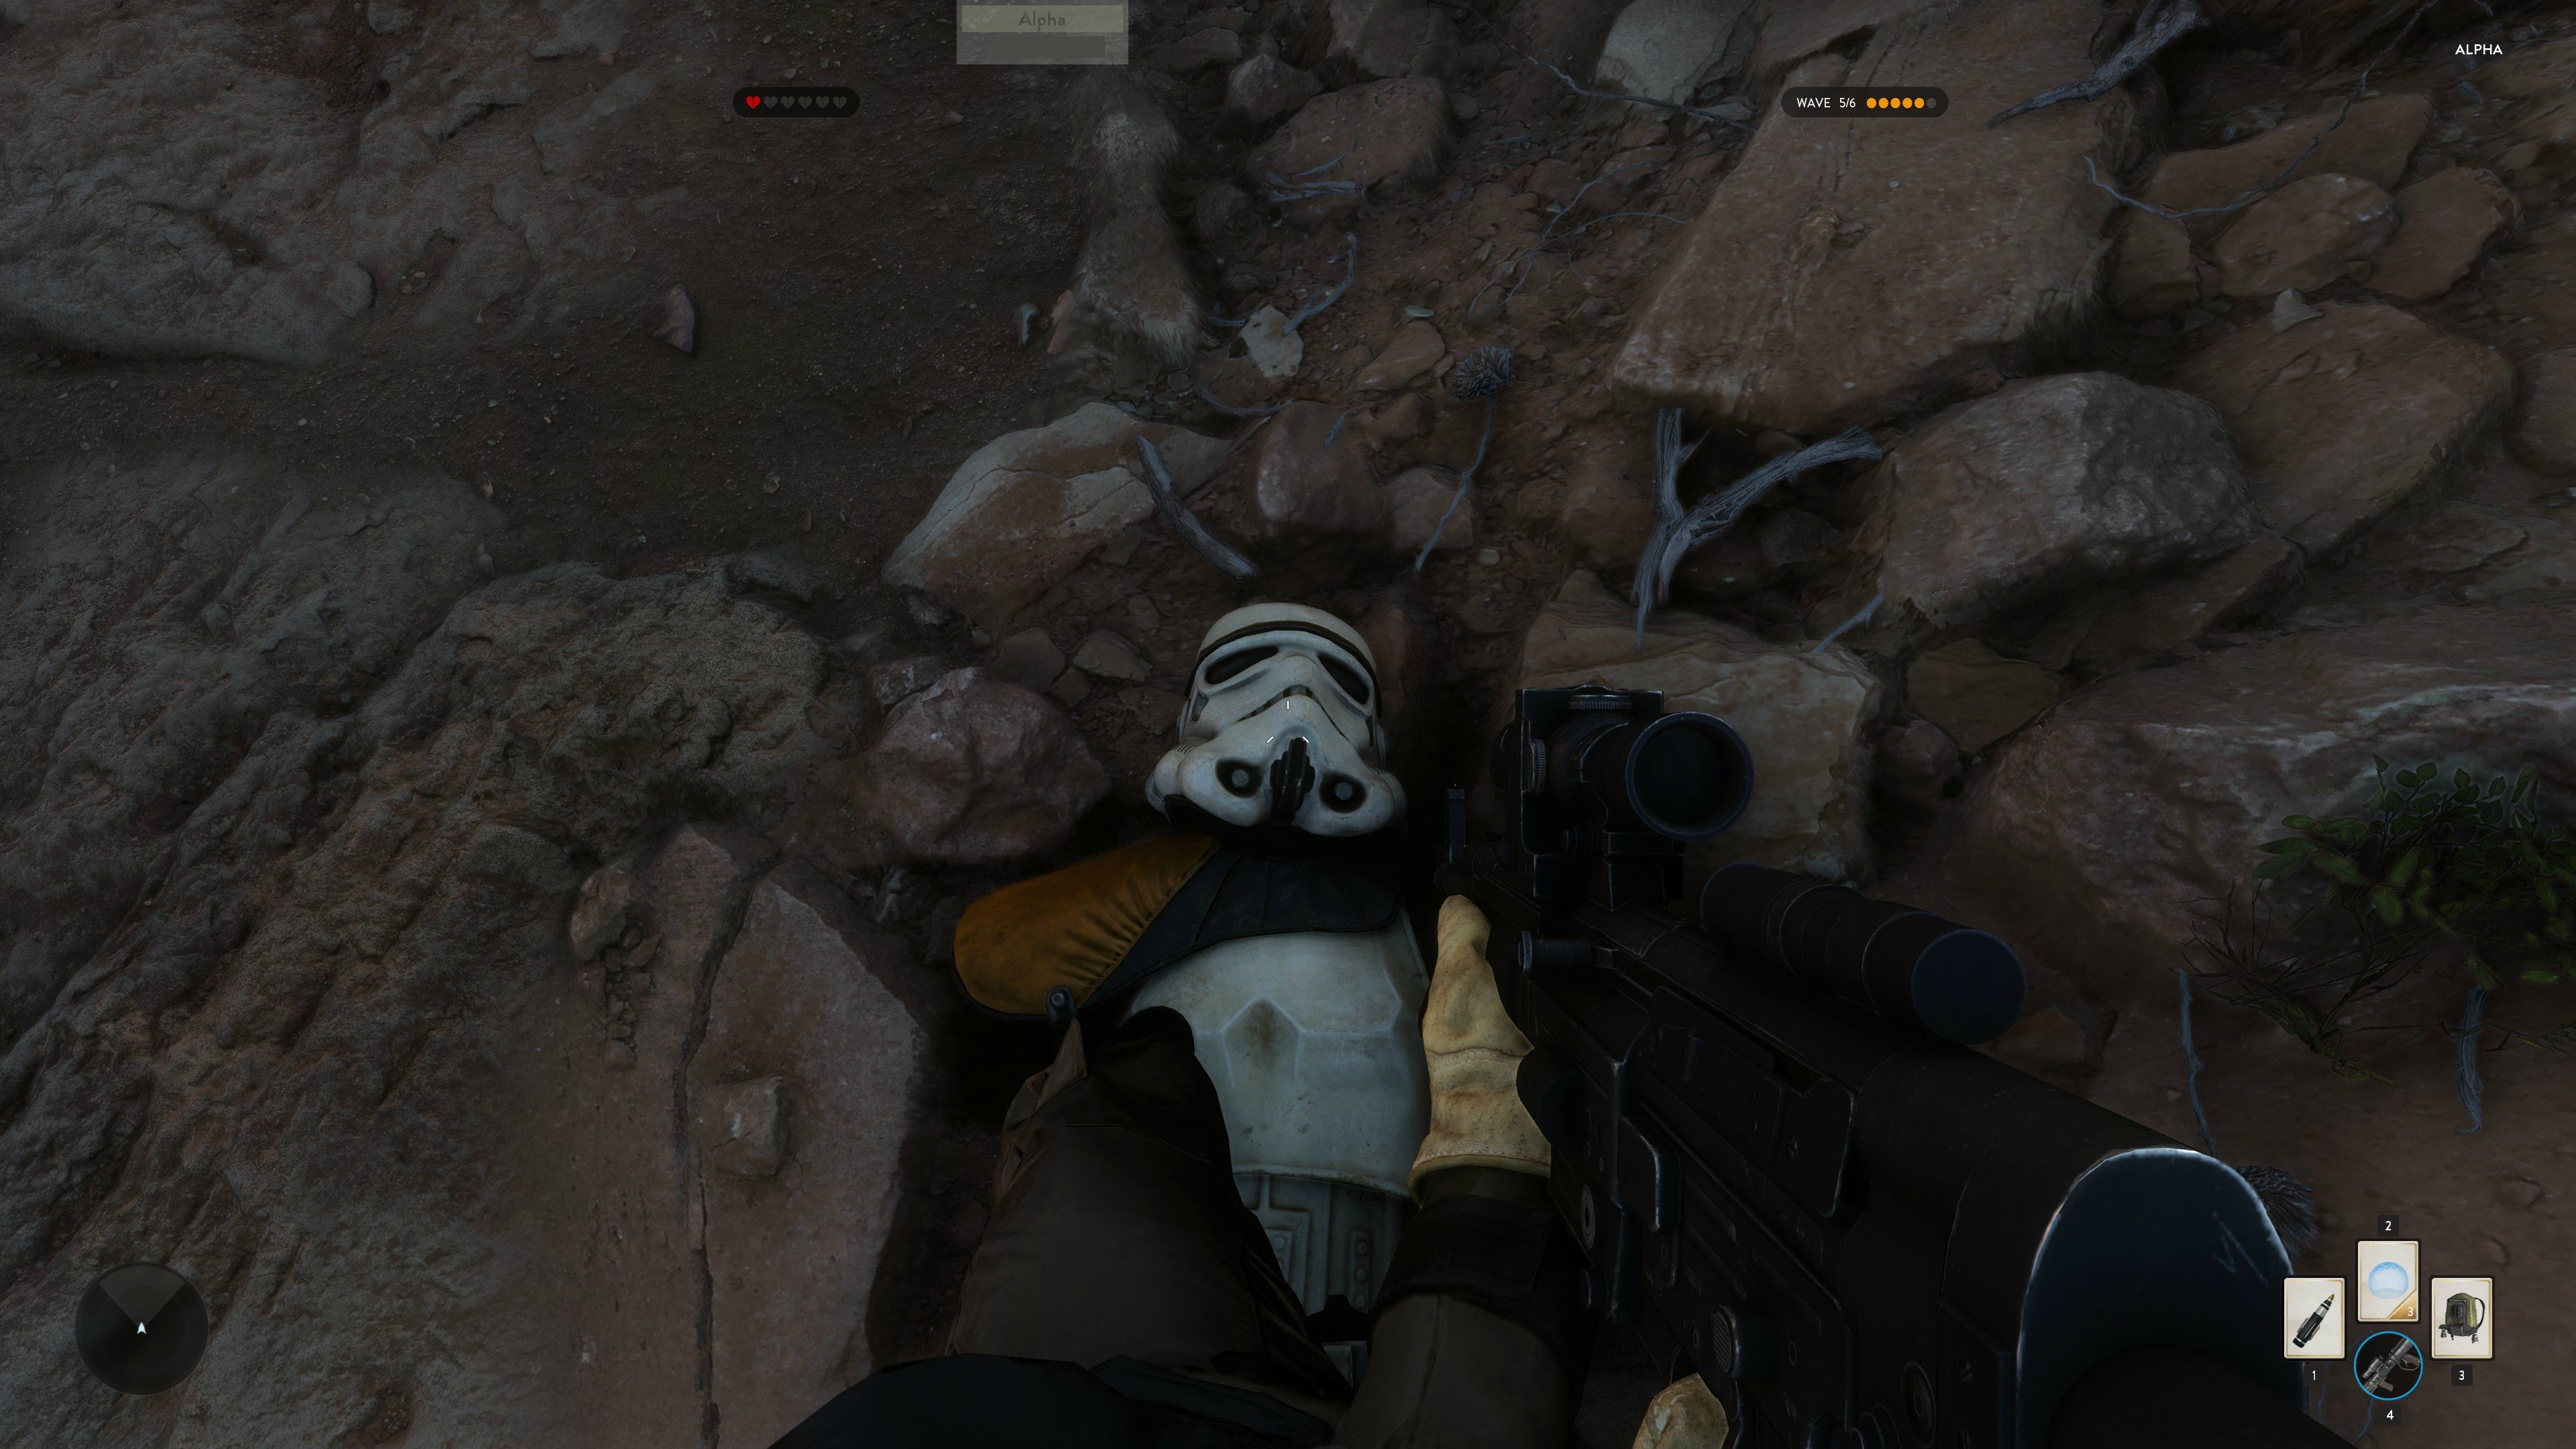 Fragtist Star Wars Battlefront (1)